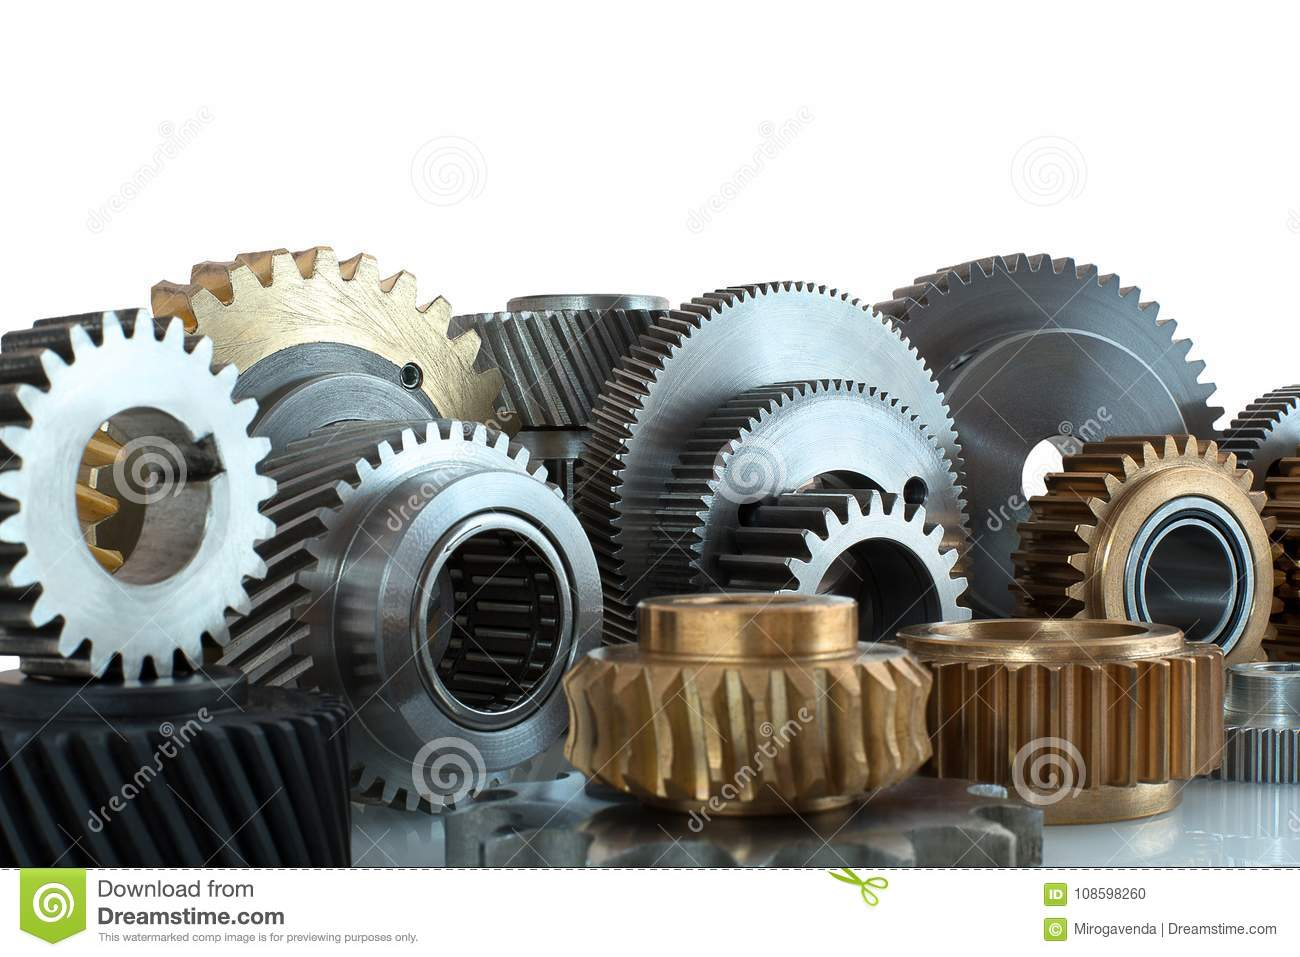 Sets of gears, cogwheels made of steel and brass isolated on white background with shadow reflection. Helical and spur gears,some